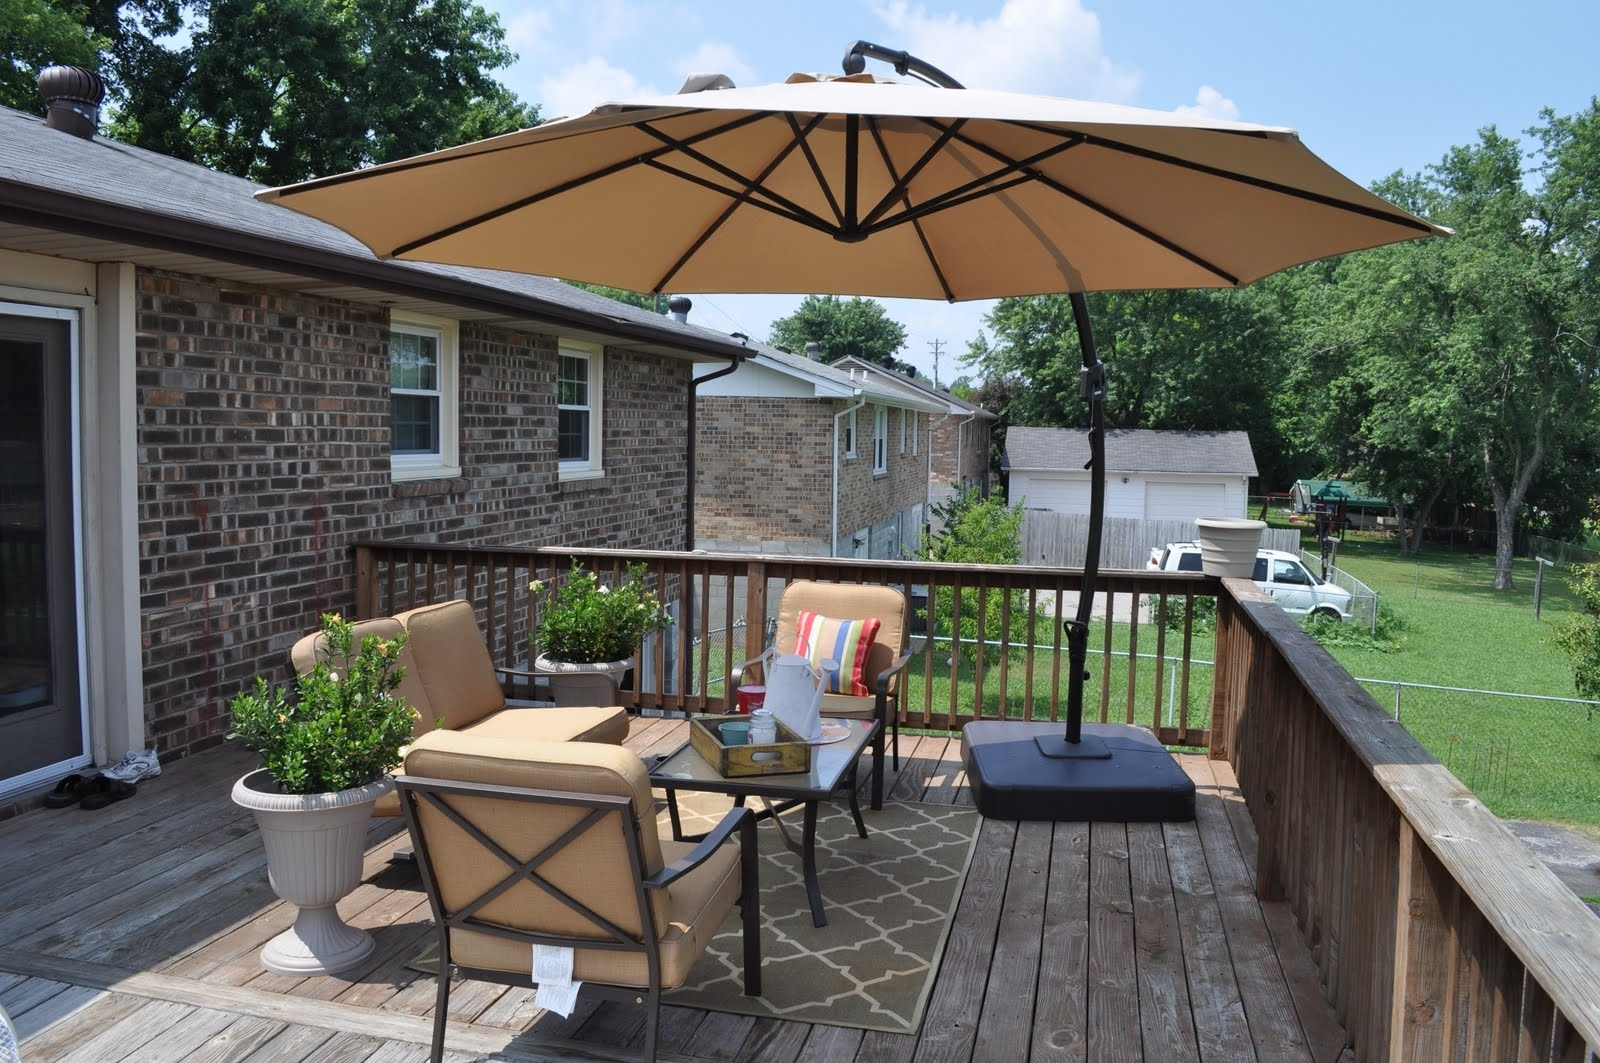 Latest Decorating Patio Furniture With Umbrella — Life On The Move Intended For Patio Deck Umbrellas (View 8 of 20)